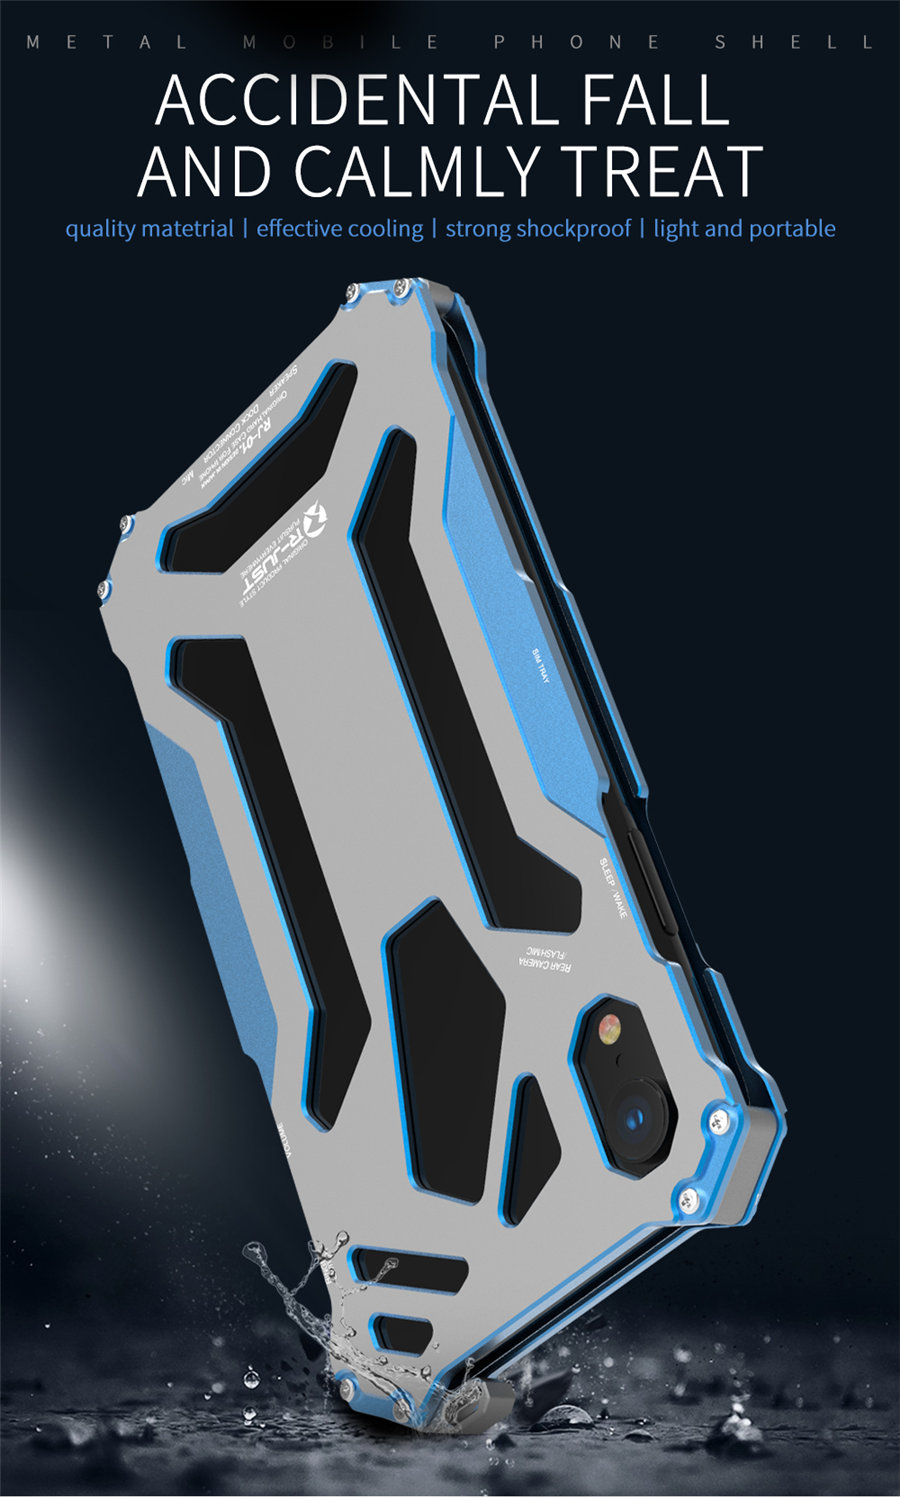 Cool Metal Phone Case For iPhone XS Max Case Cover For iPhone XS R-JUST Gundam Aluminum Case Coque Capa Funda For iPhone XR (2)